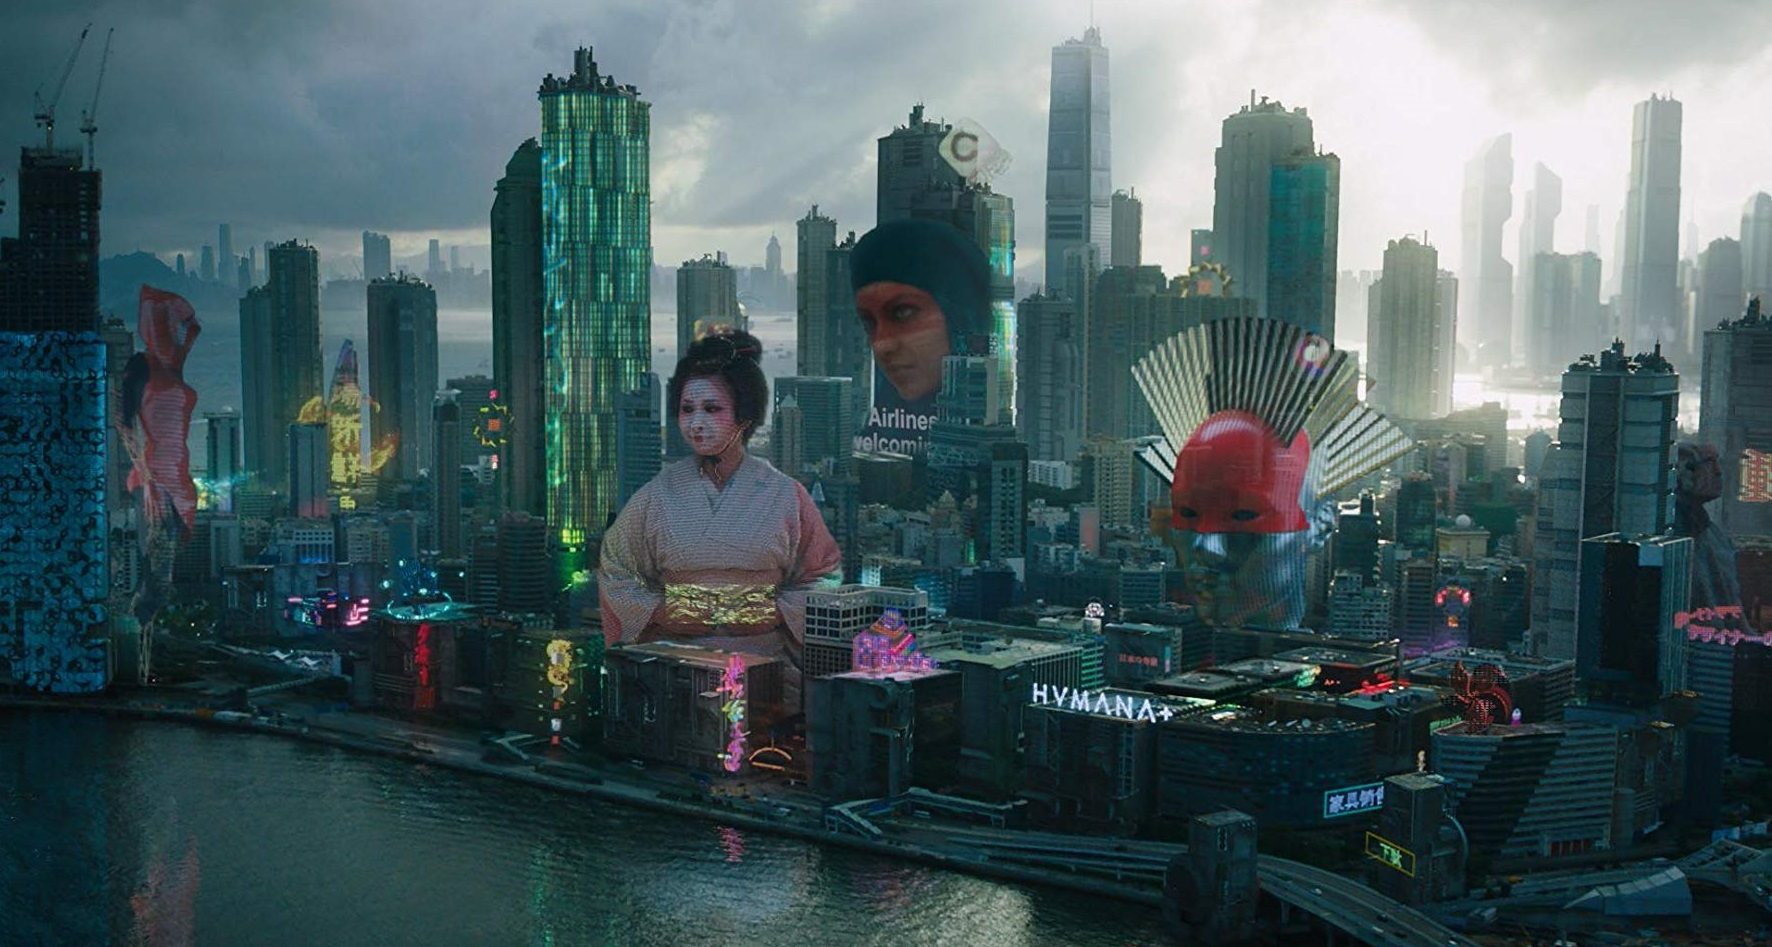 Cityscape of the future from Ghost in the Shell (2017)